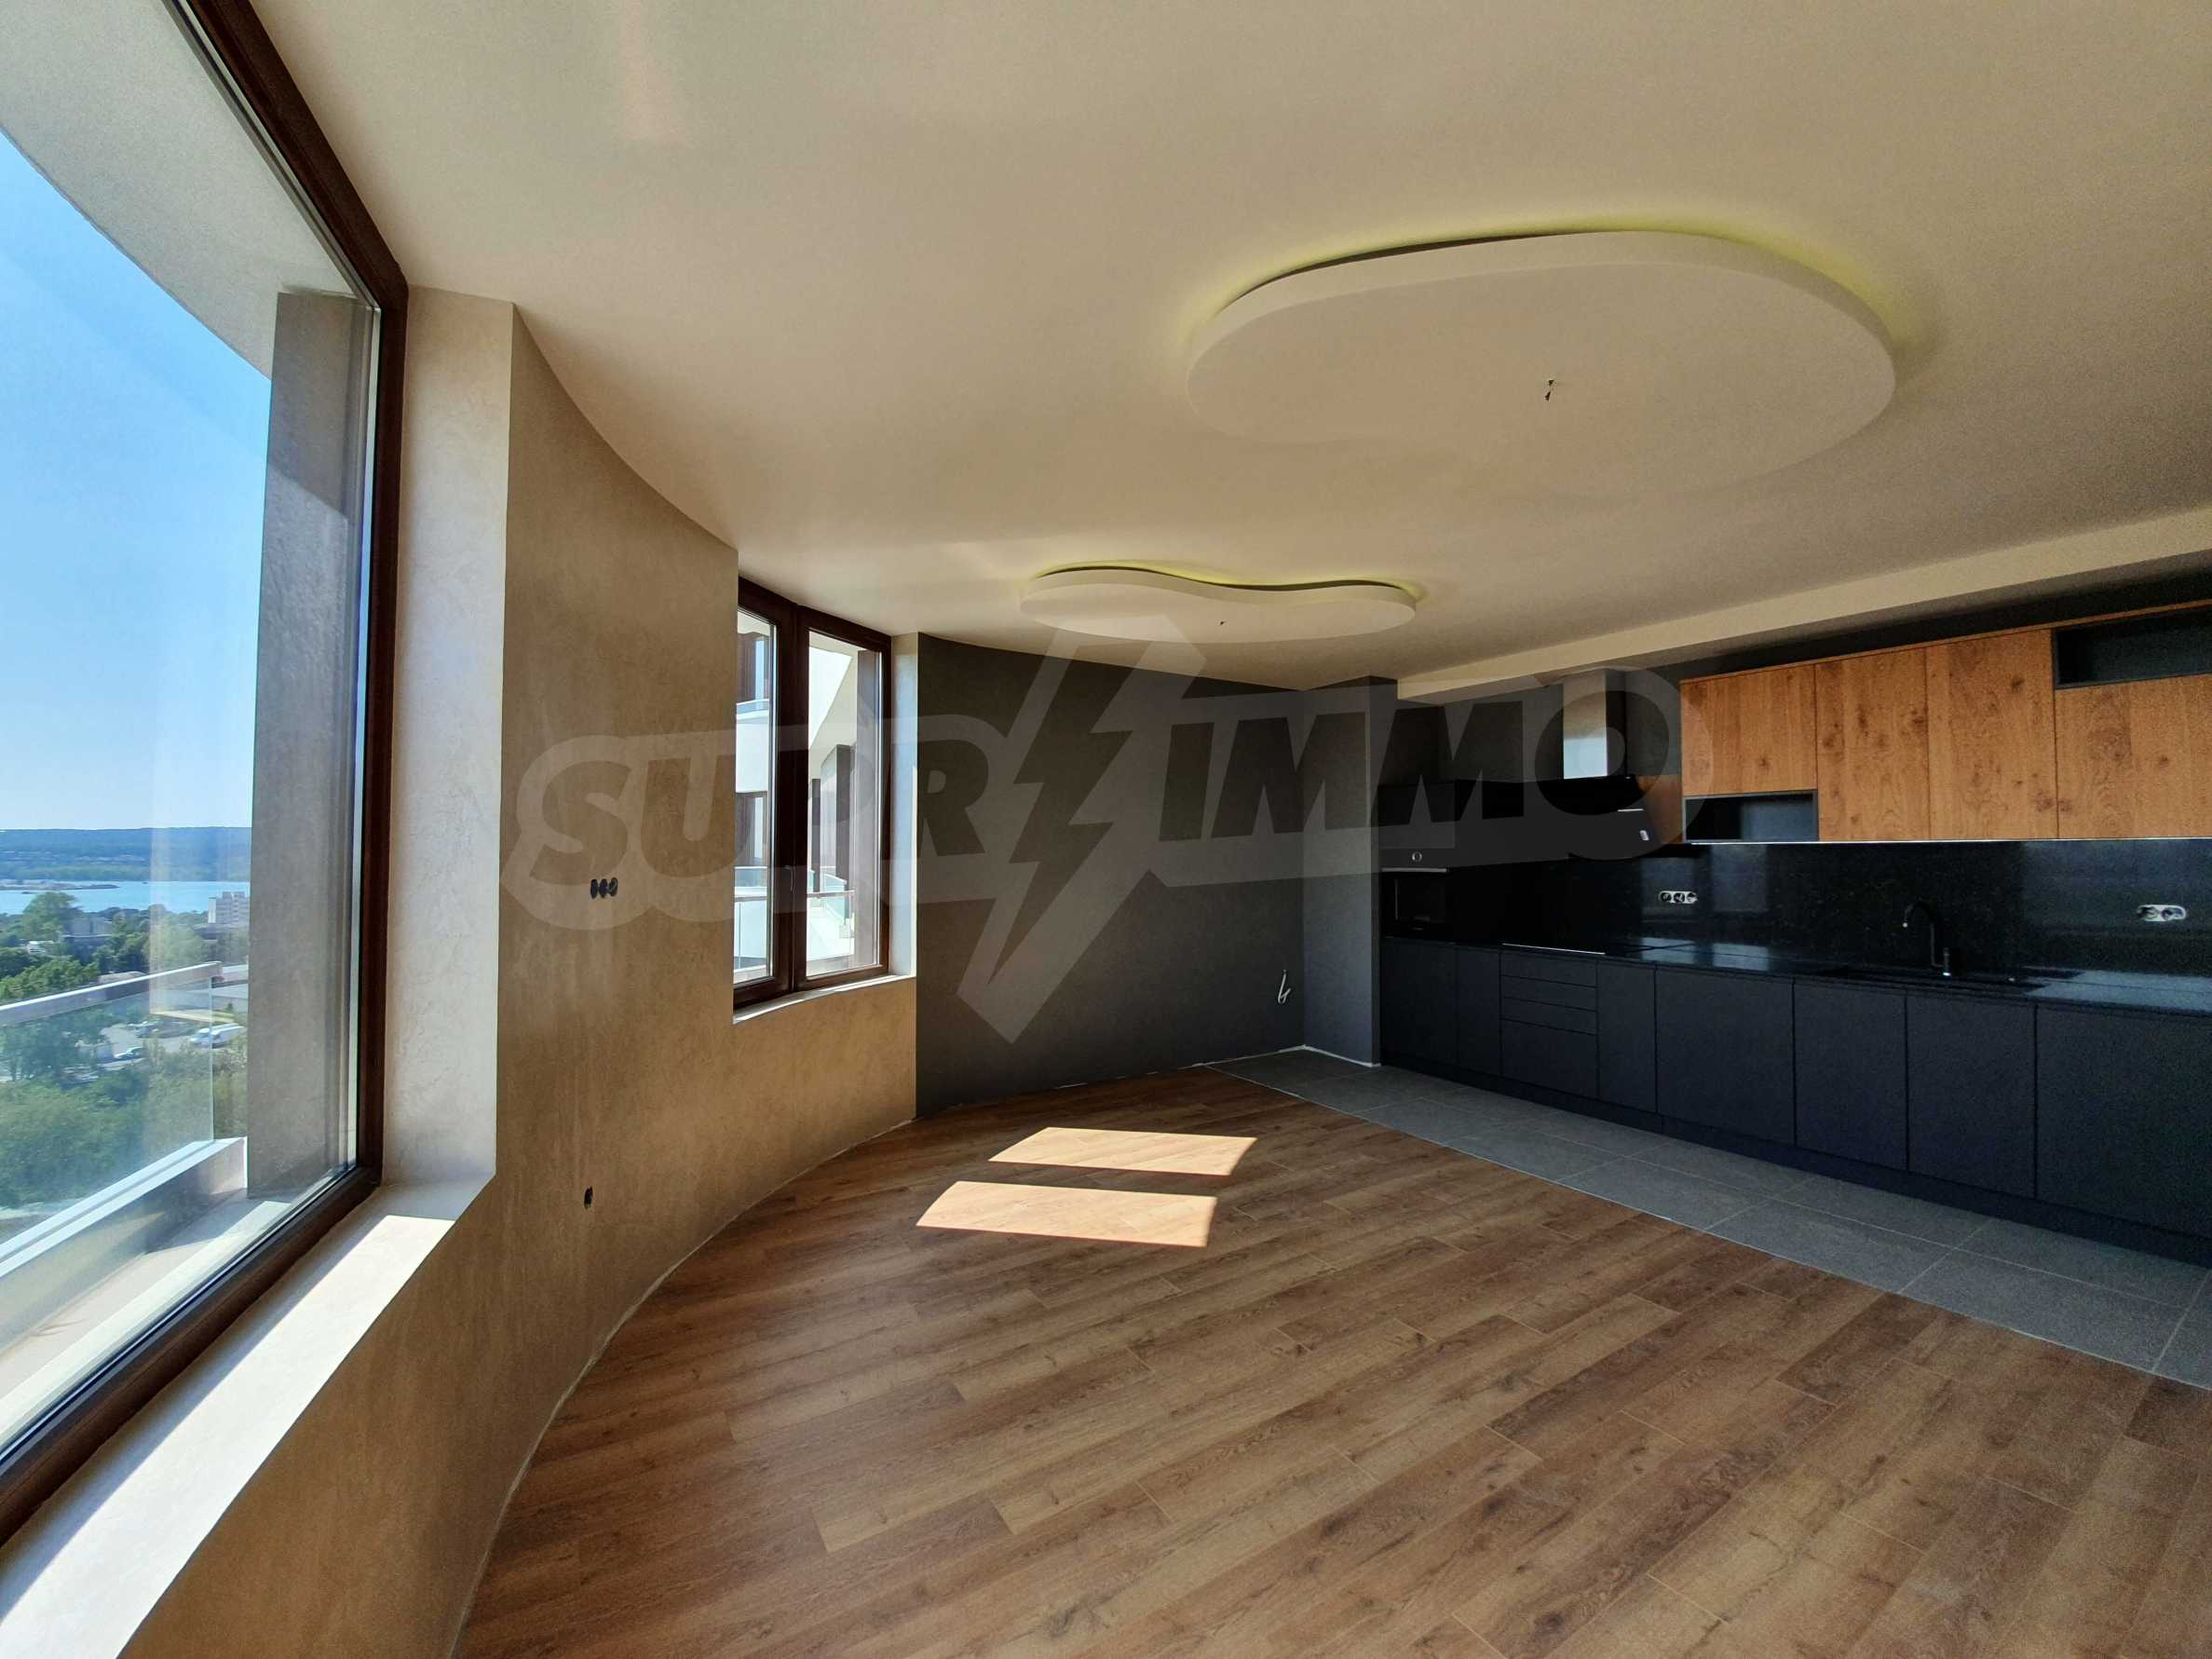 Panoramic two-bedroom apartment with views of the lake and Varna 7